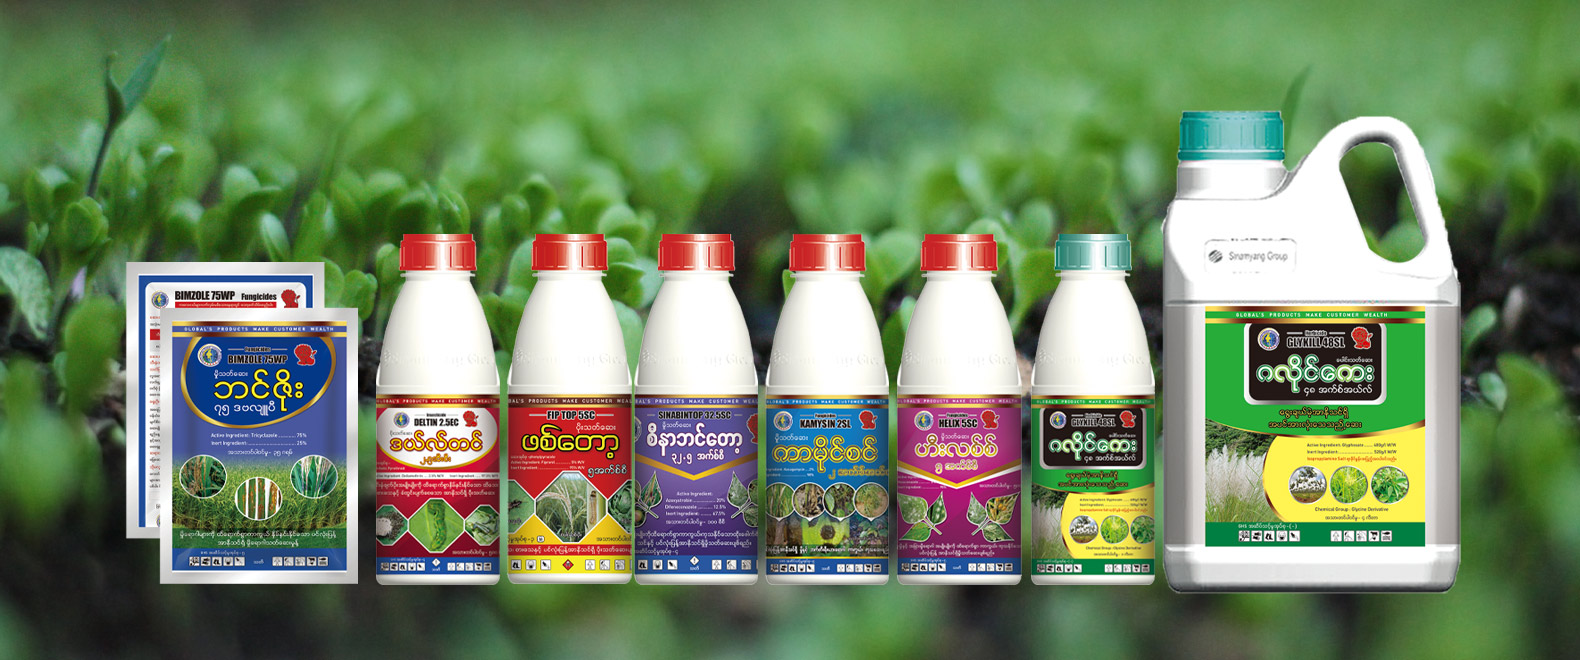 Water-soluble Fertilizers Containing NPK